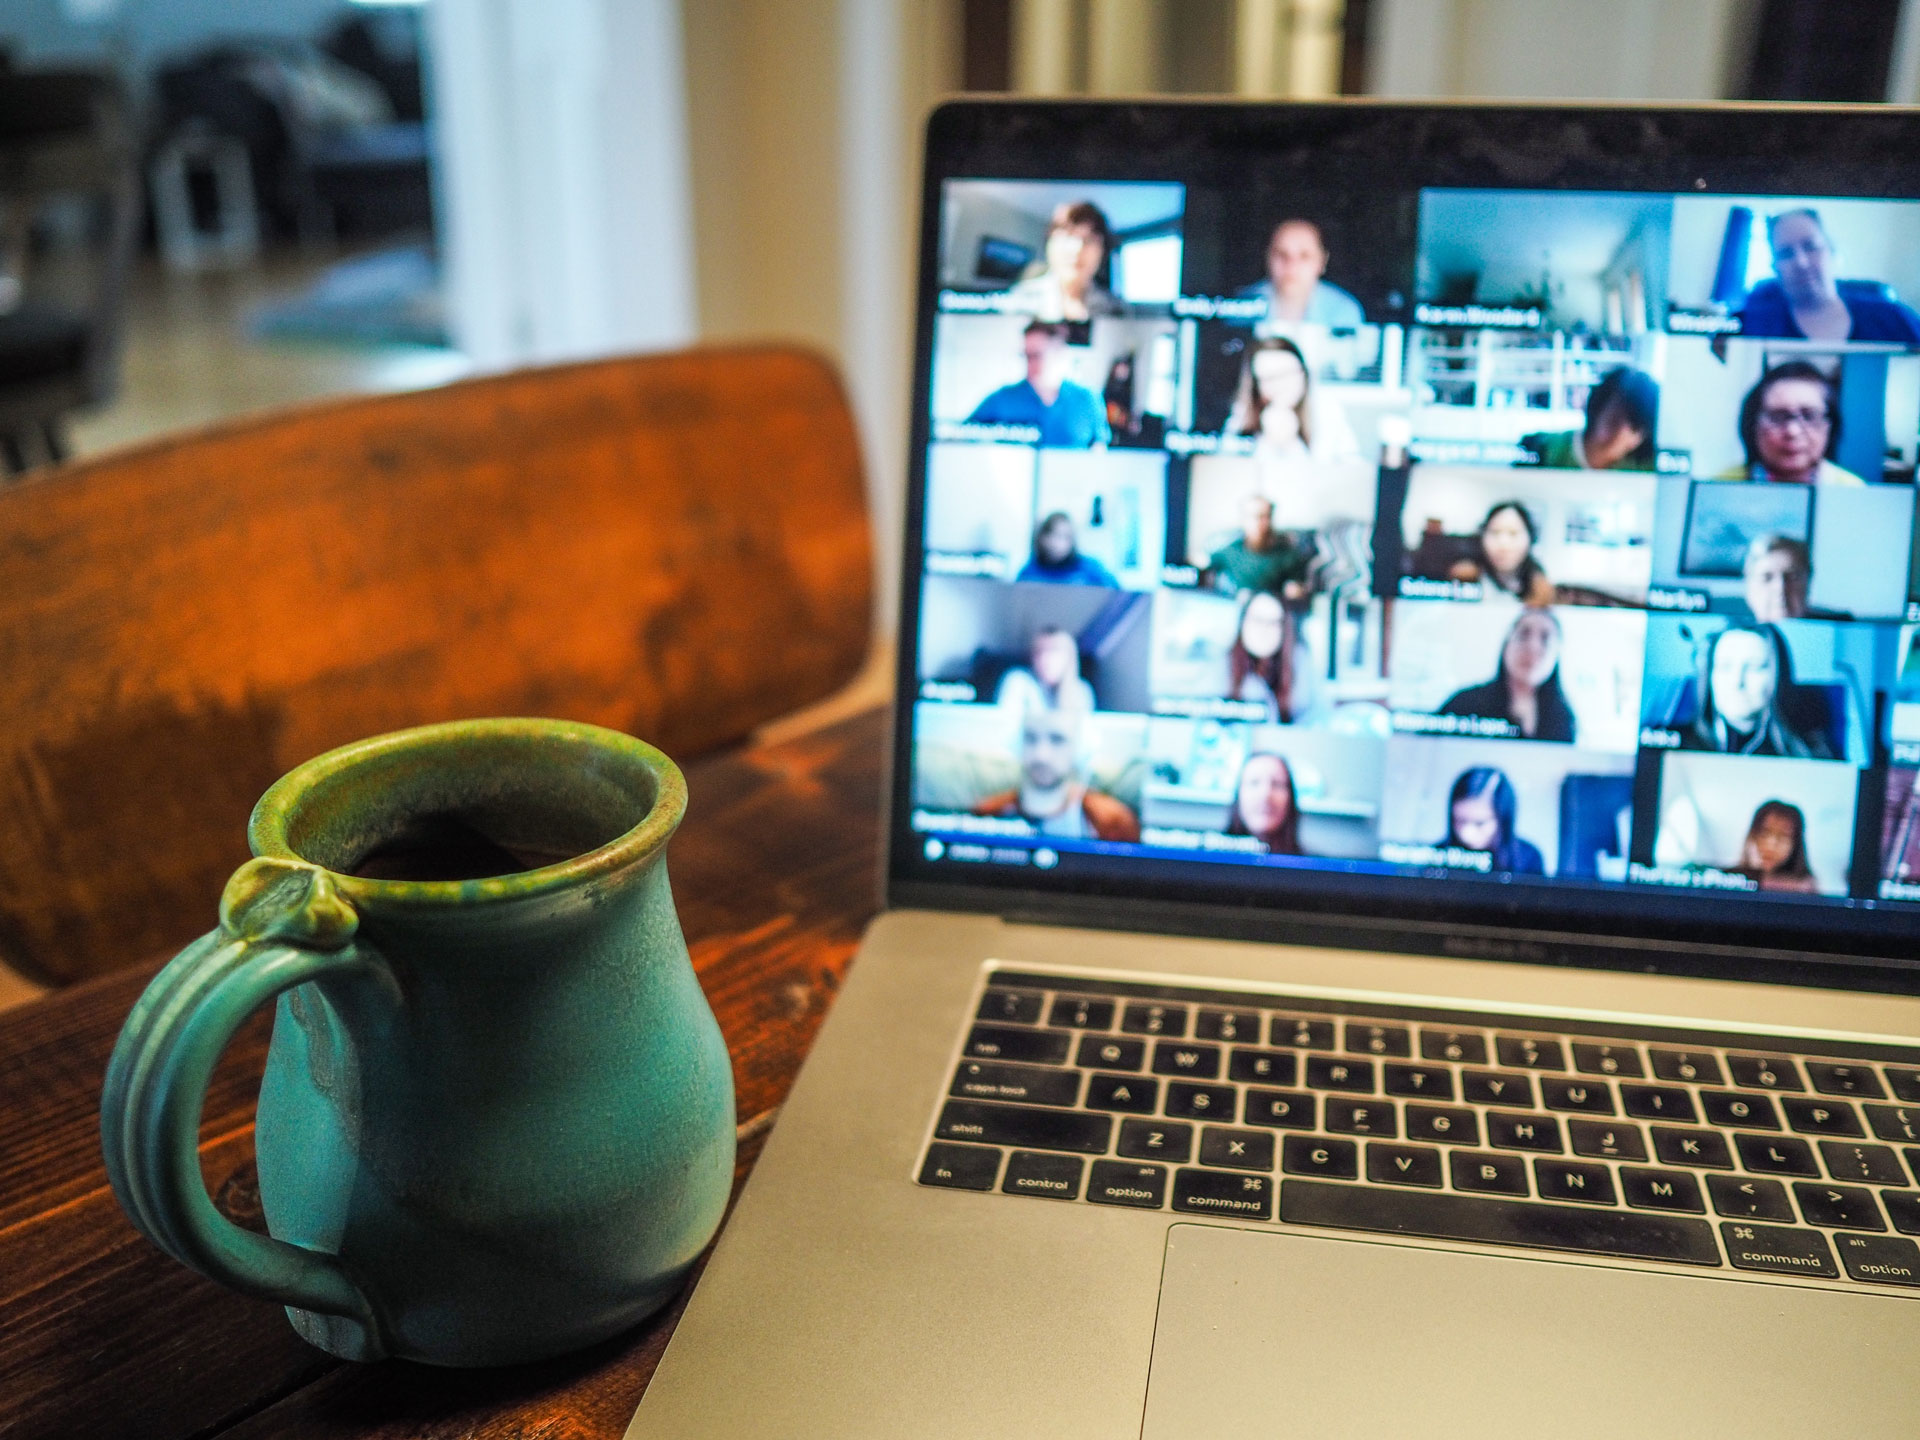 Photo of a laptop during a video conference call showing multiple participants via their webcam videos.